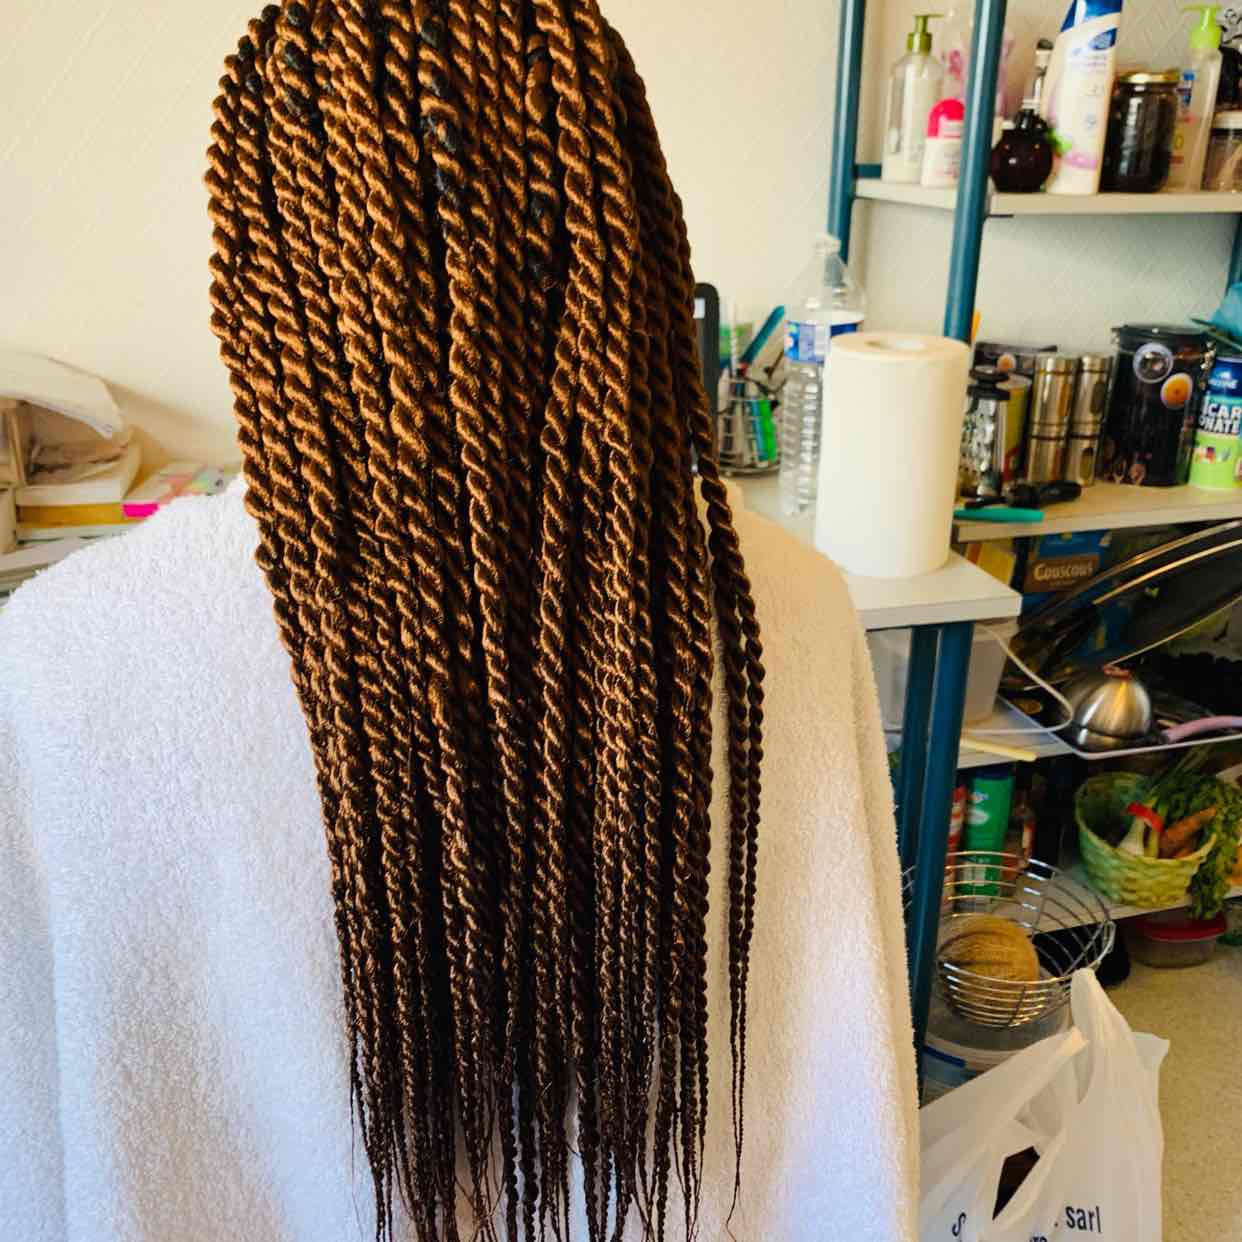 salon de coiffure afro tresse tresses box braids crochet braids vanilles tissages paris 75 77 78 91 92 93 94 95 WRTEELOB